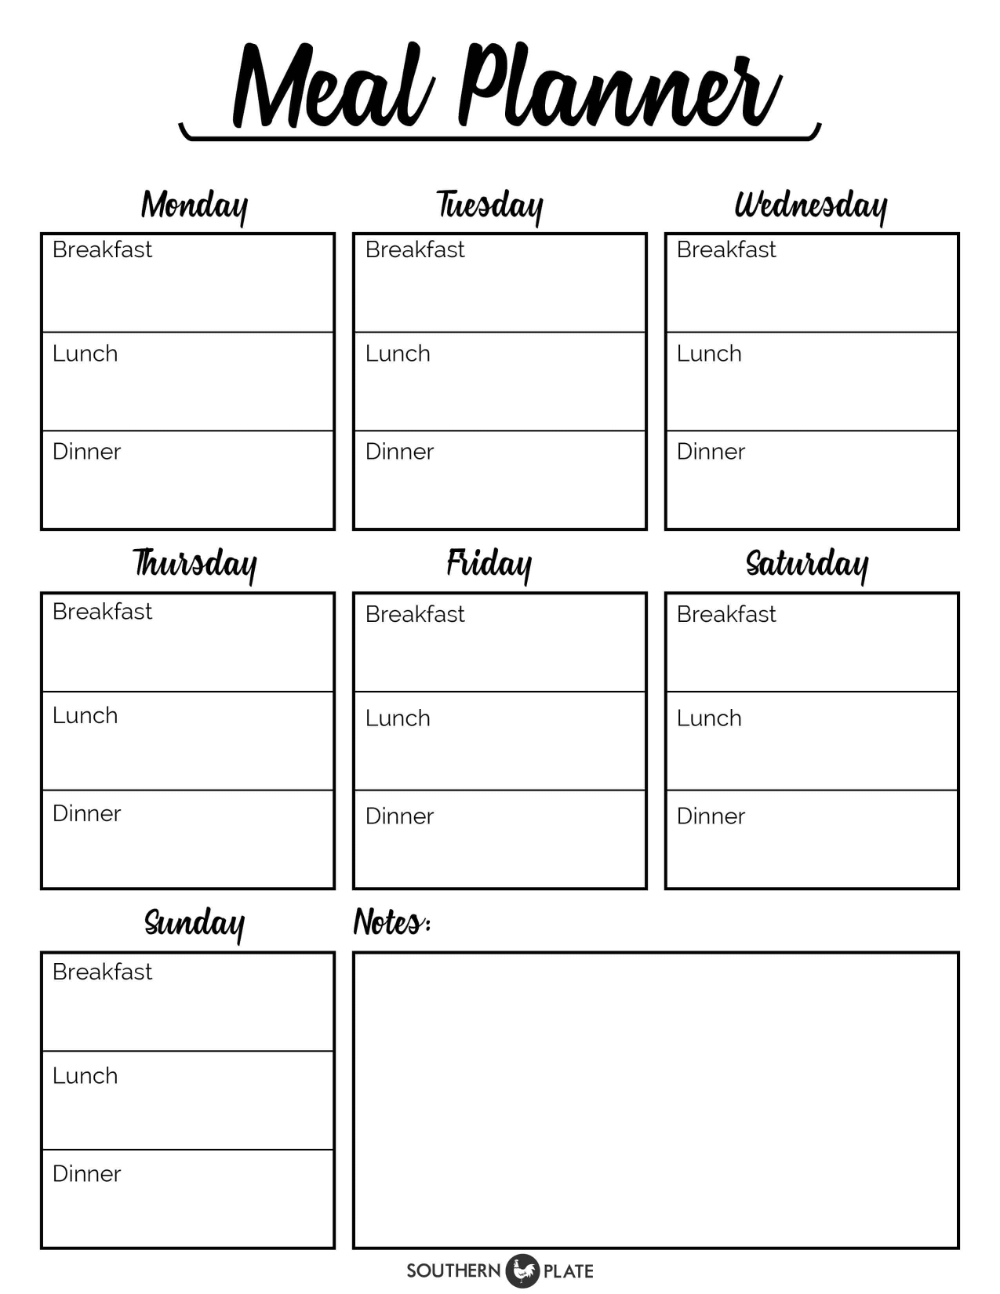 Free Printable Menu Planner Sheet Southern Plate With